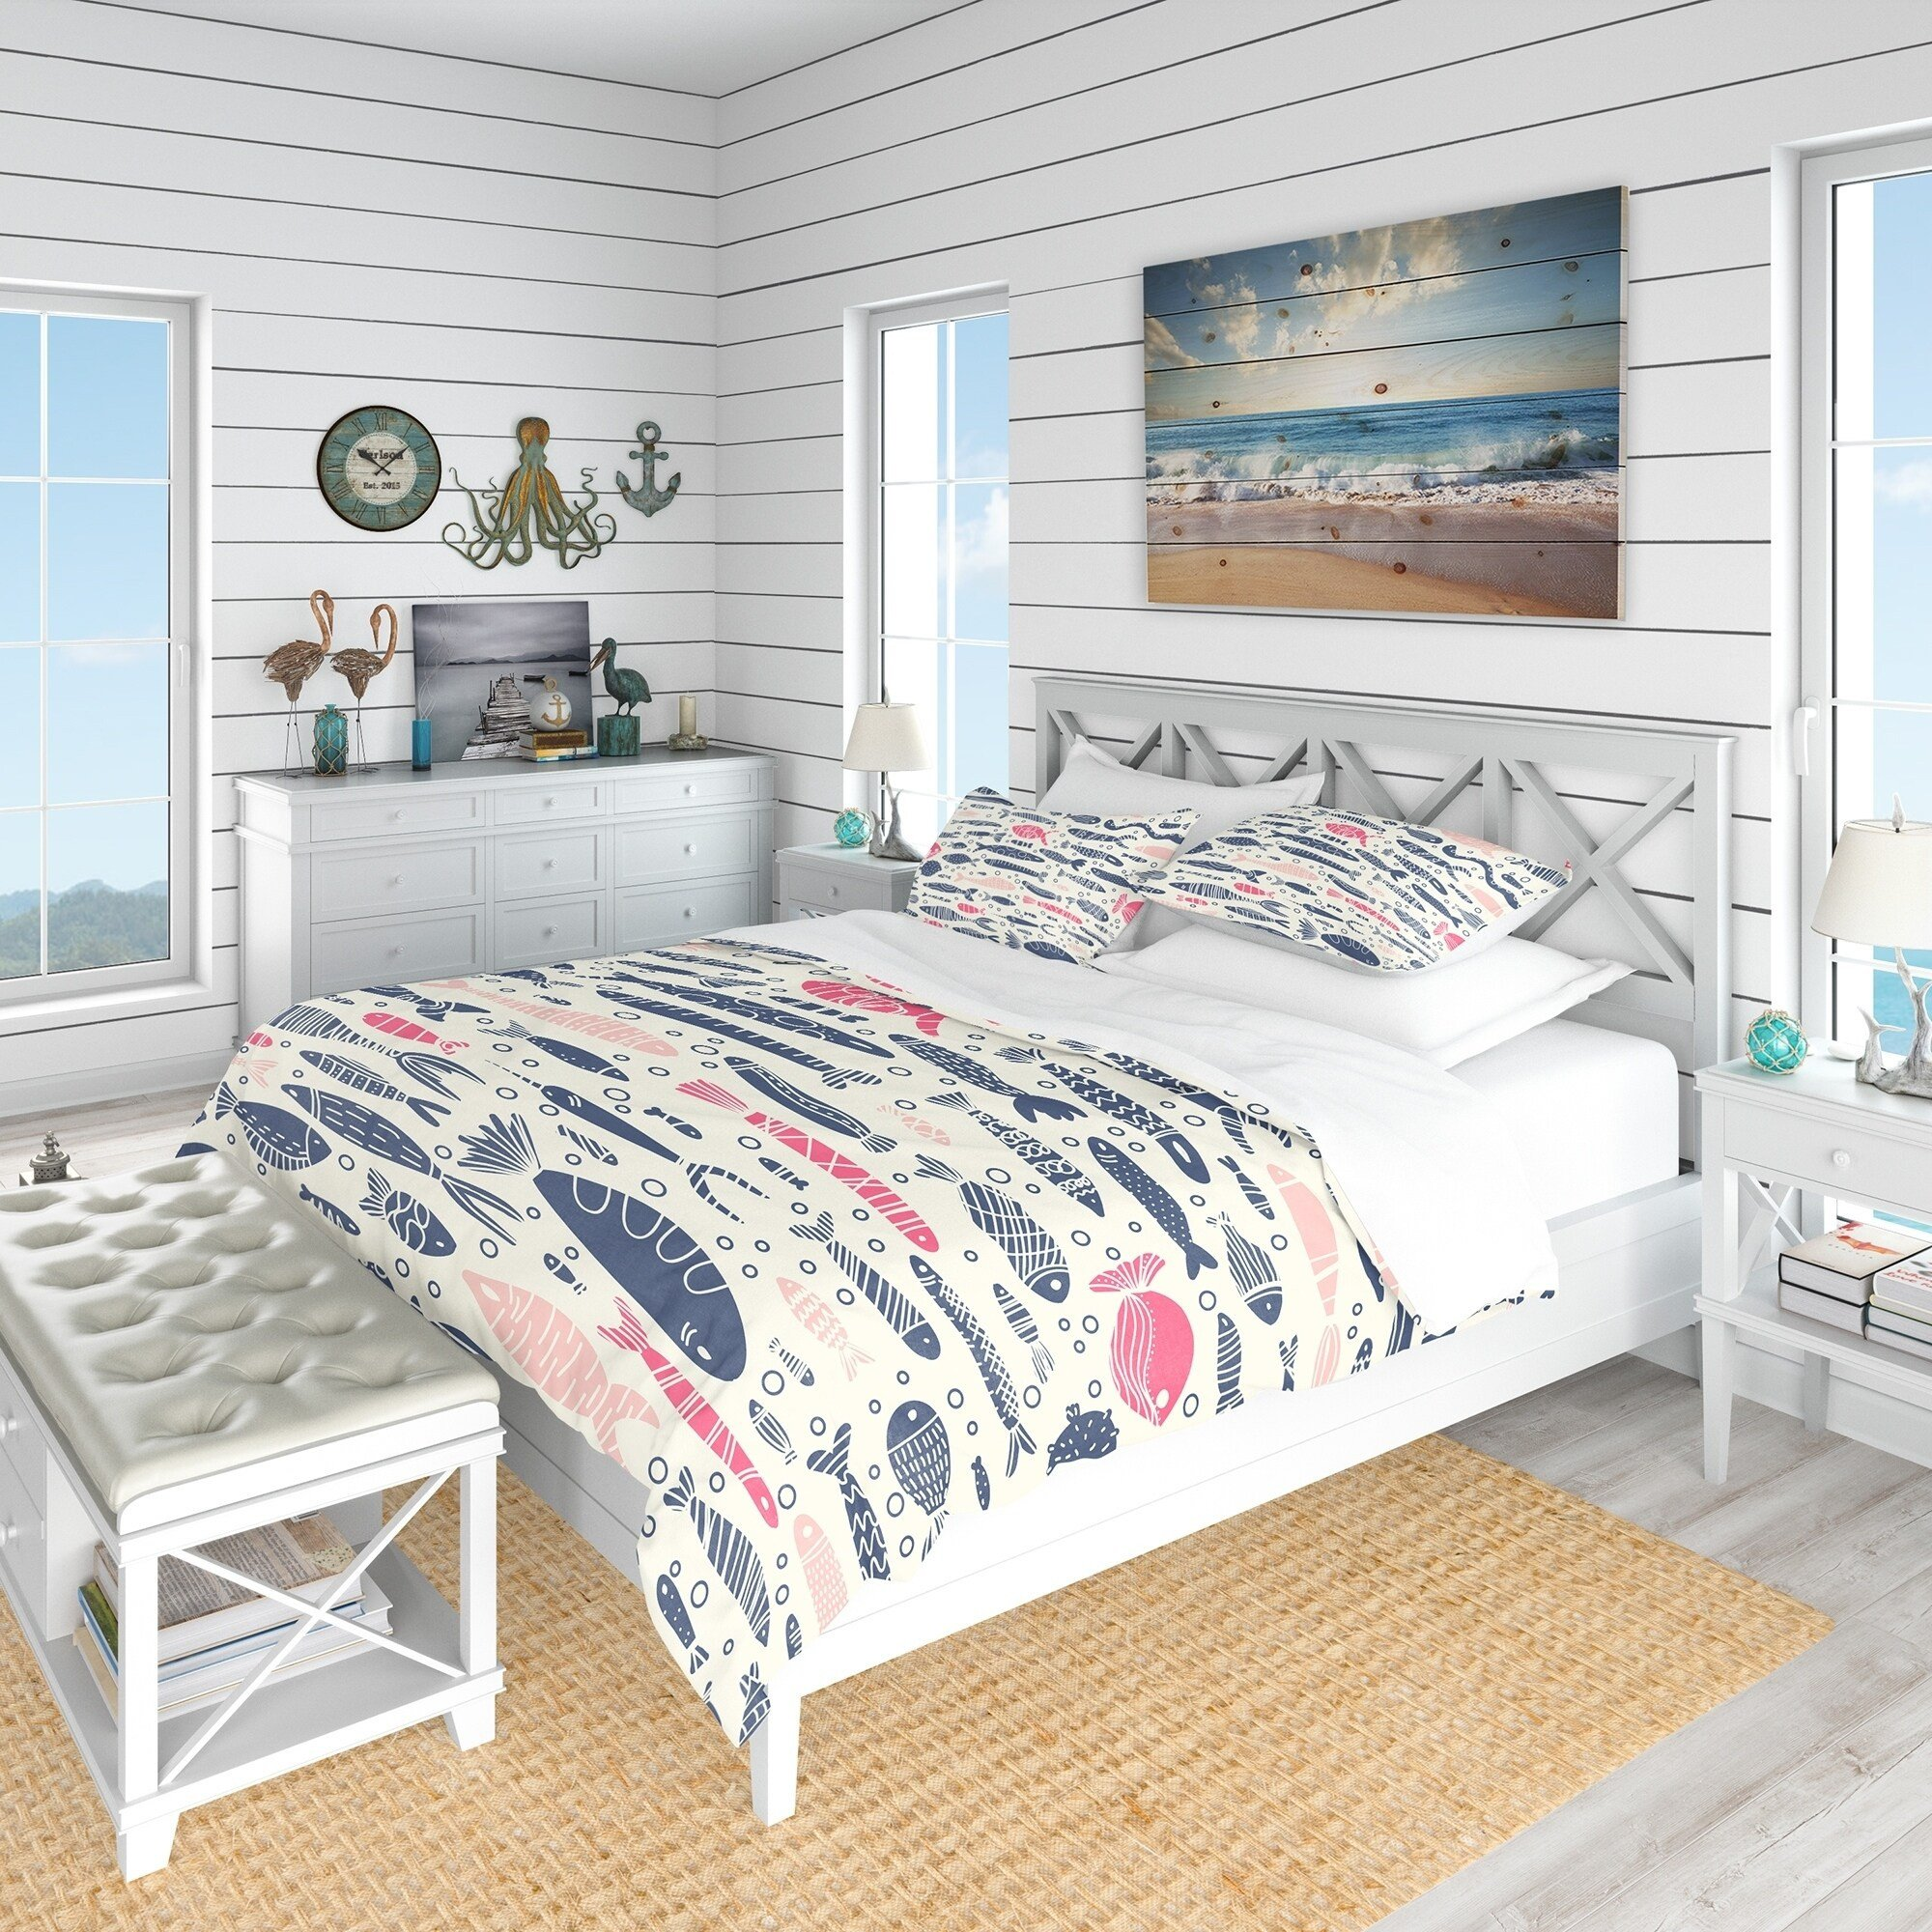 Coastal Style Bedroom Furniture Unique Designart Cute Fishes with Doodles Nautical & Coastal Bedding Set Duvet Cover & Shams